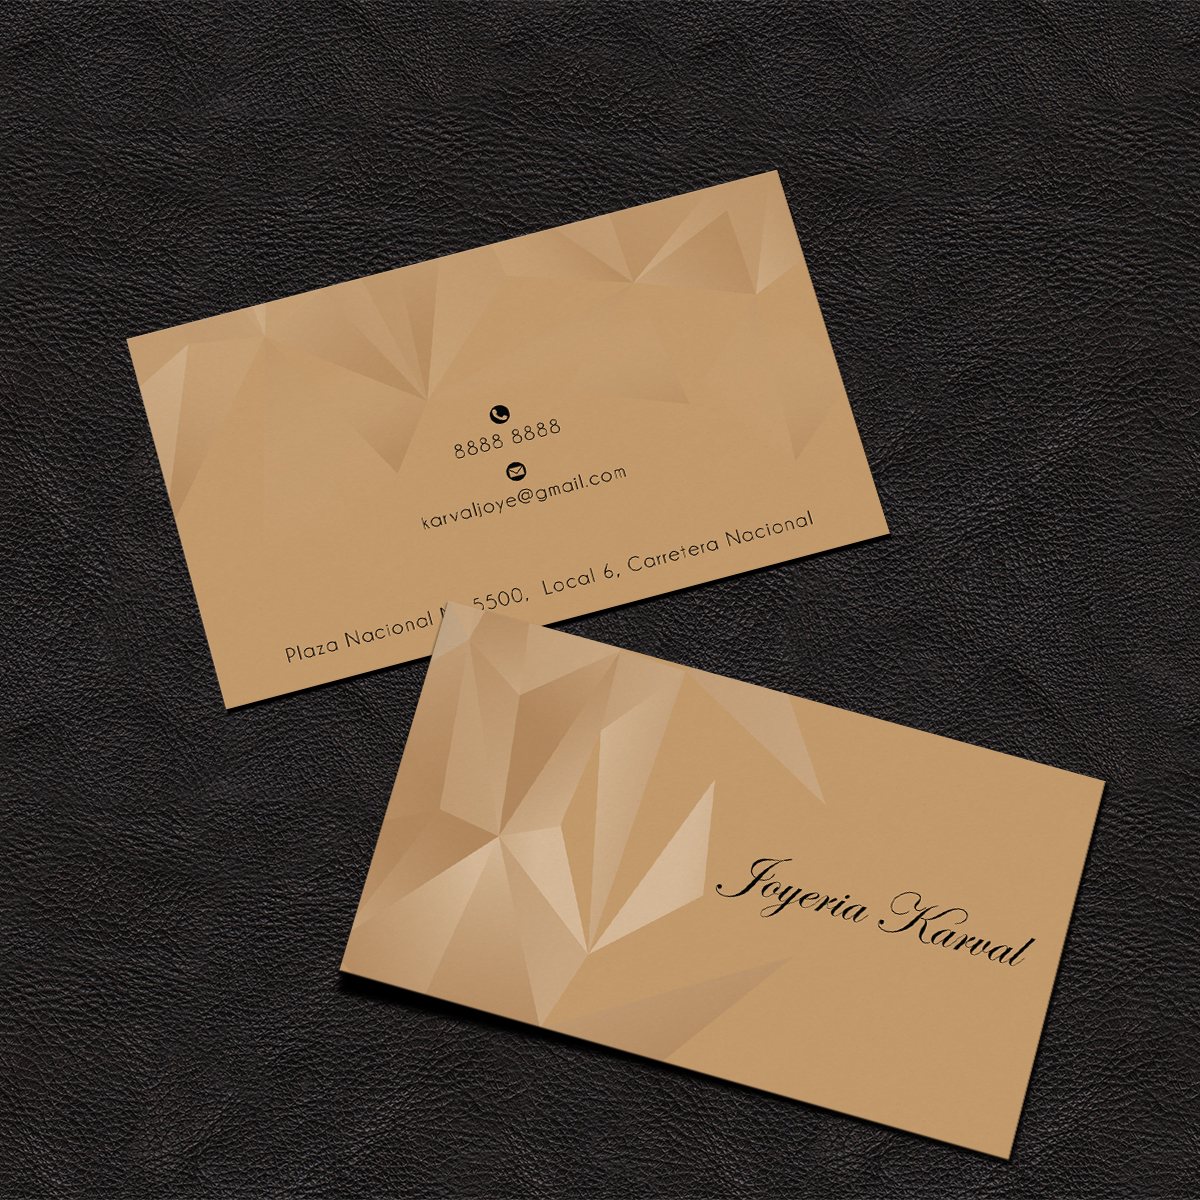 Serious conservative jewelry store business card design for business card design by grafactory for joyeria karval design 11358375 reheart Gallery